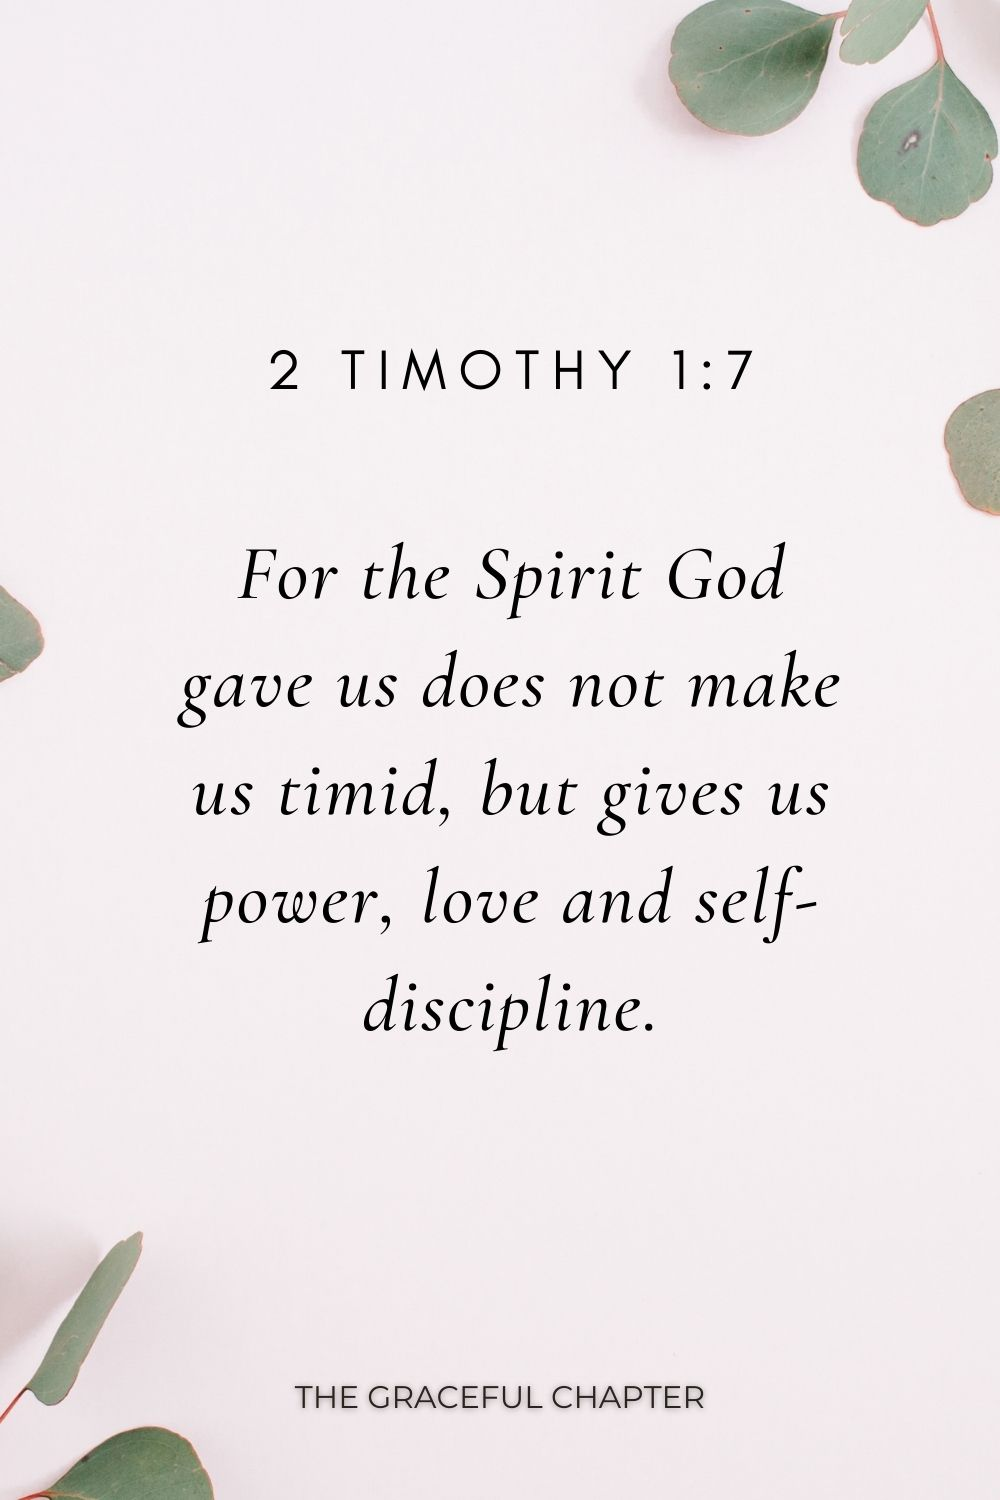 For the Spirit God gave us does not make us timid, but gives us power, love and self-discipline. 2 Timothy1:7